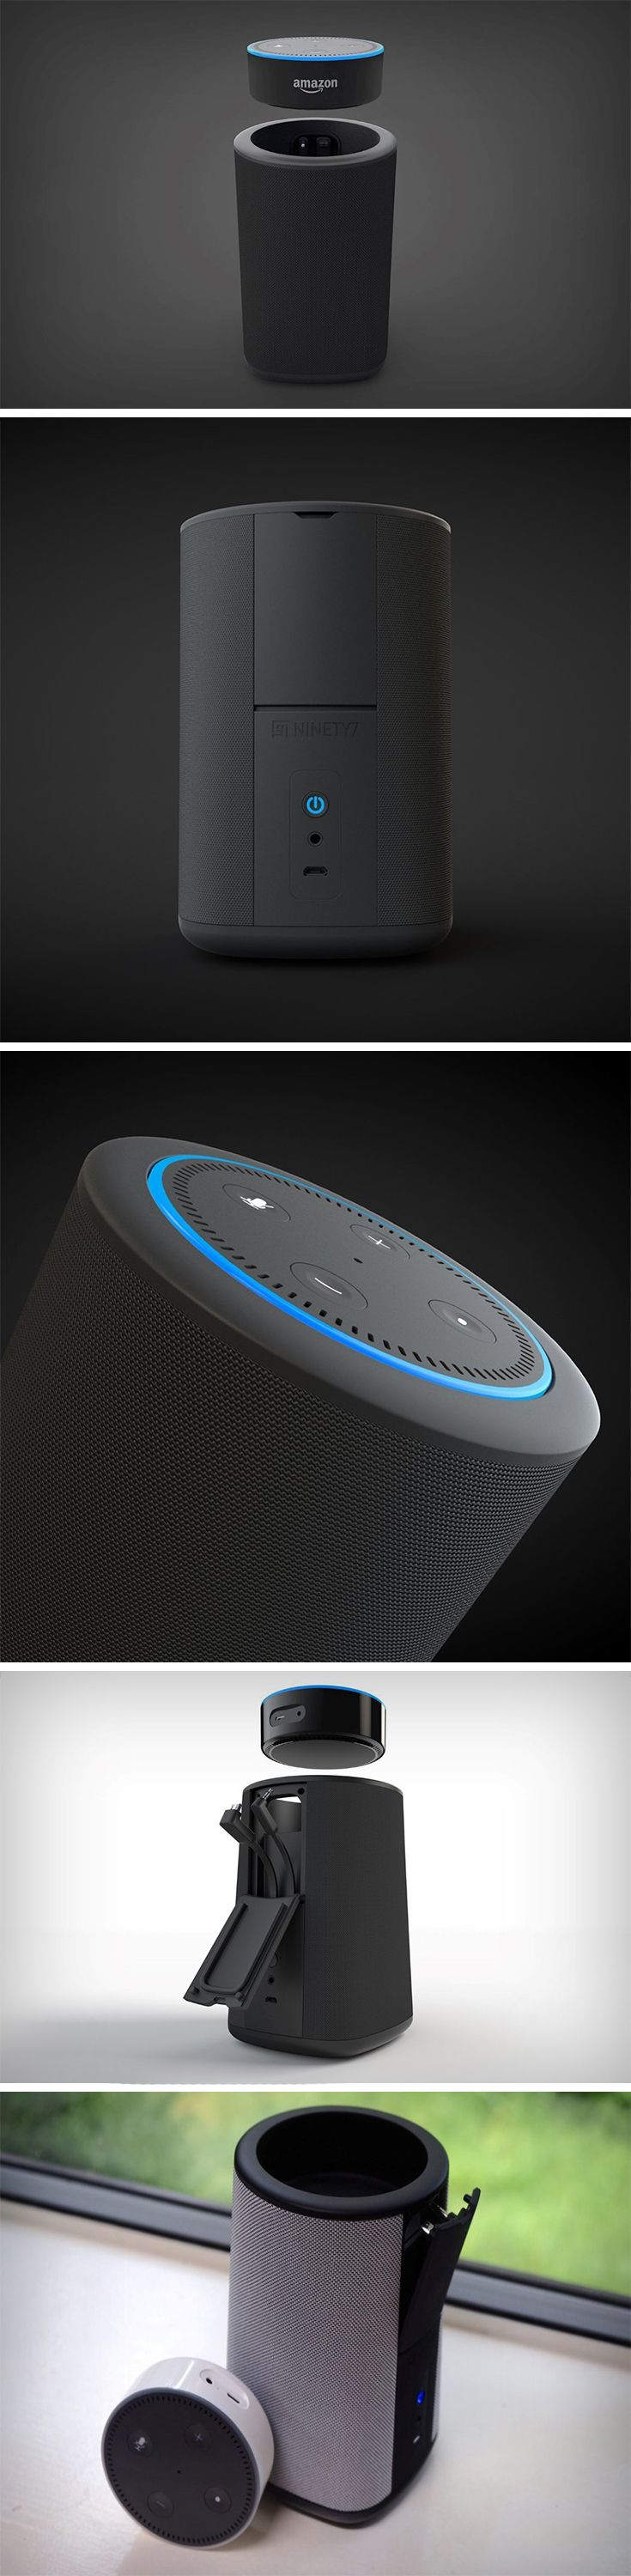 If you've got an Amazon Echo Dot lying around the house you know exactly how good it is as an AI butler but how lackluster it is in the music department. In comes the Vaux, a one-of-a-kind accessory for the Amazon Dot (Gen 2). What the Vaux is, is a wireless speaker unit made specifically for the Dot. The Vaux retains every bit of the Dot's features and allows it to perform as a pretty good speaker too. BUY NOW!